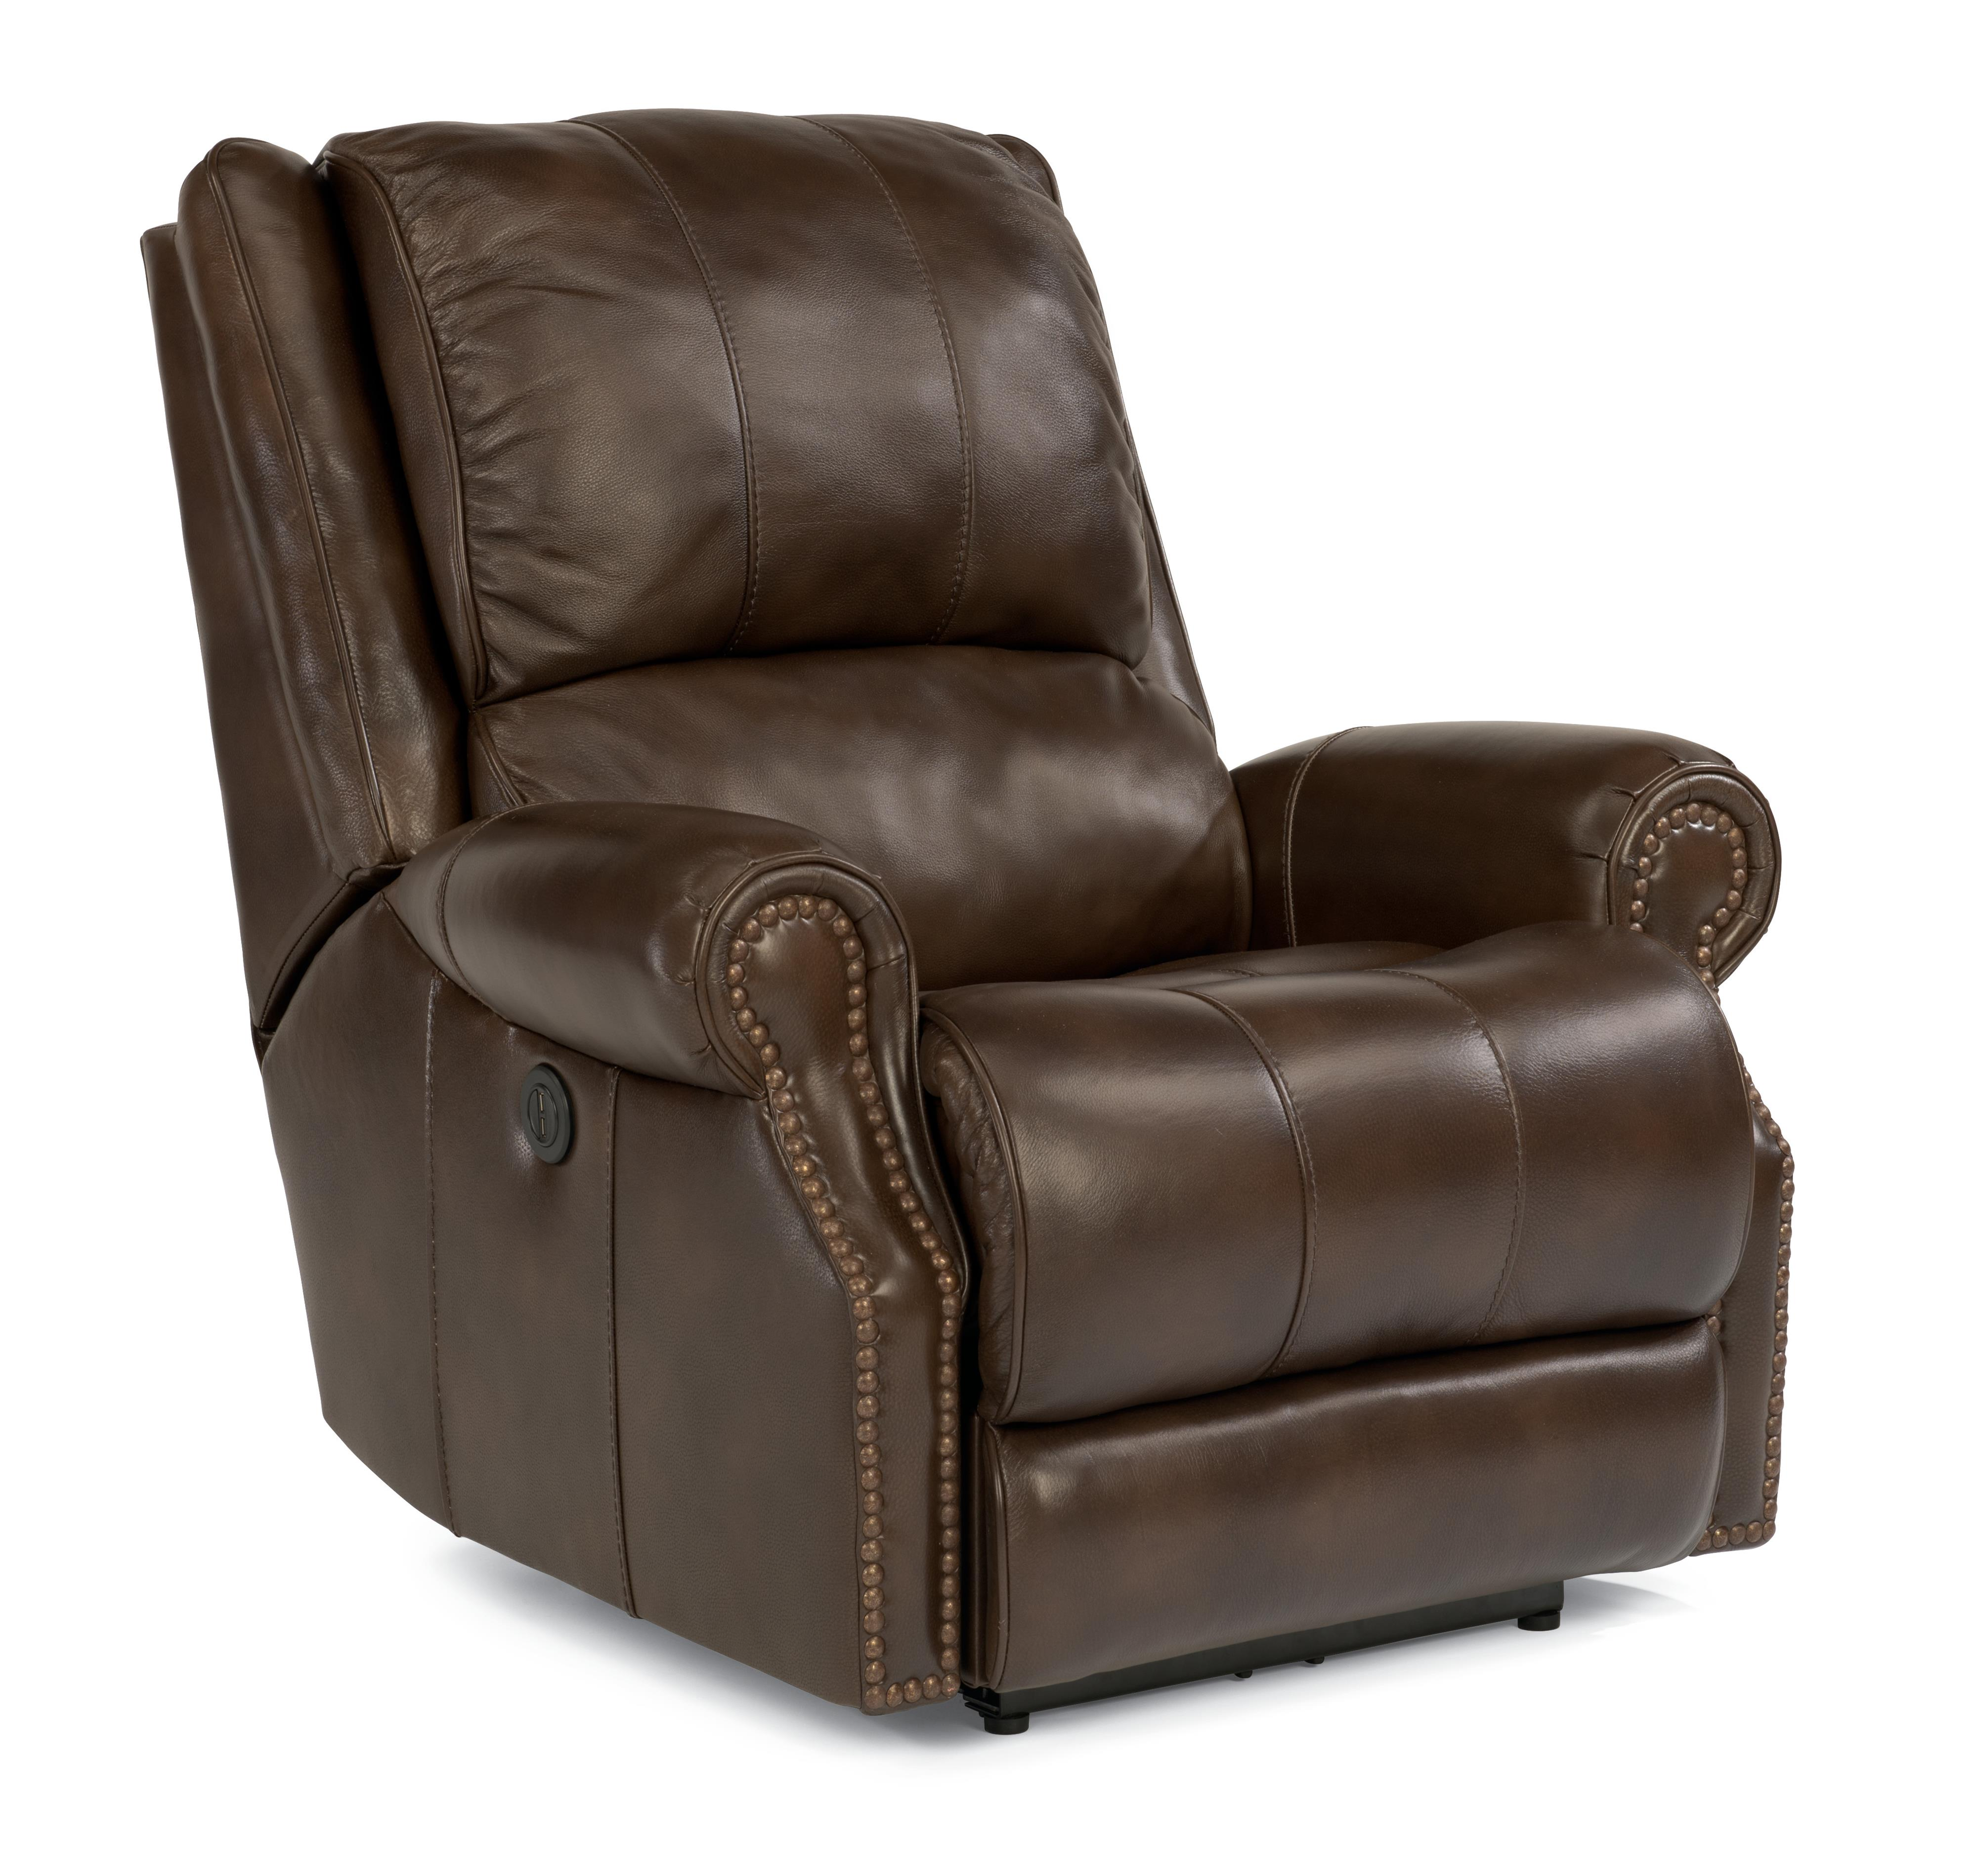 Flexsteel Latitudes-Sedgewick Rocking Recliner - Item Number: 1252-510-418-74